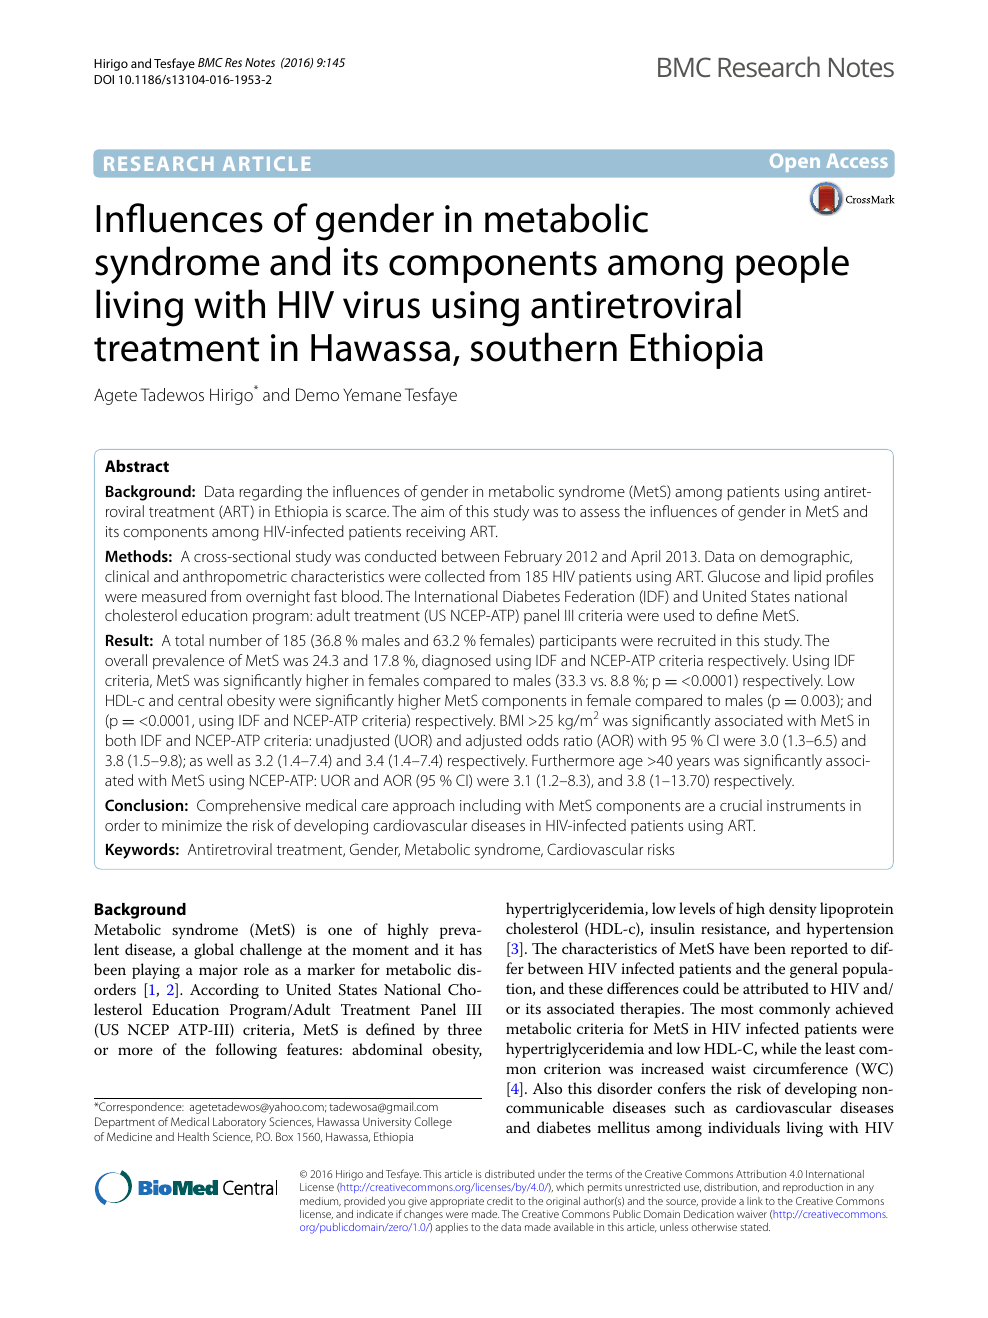 Influences of gender in metabolic syndrome and its